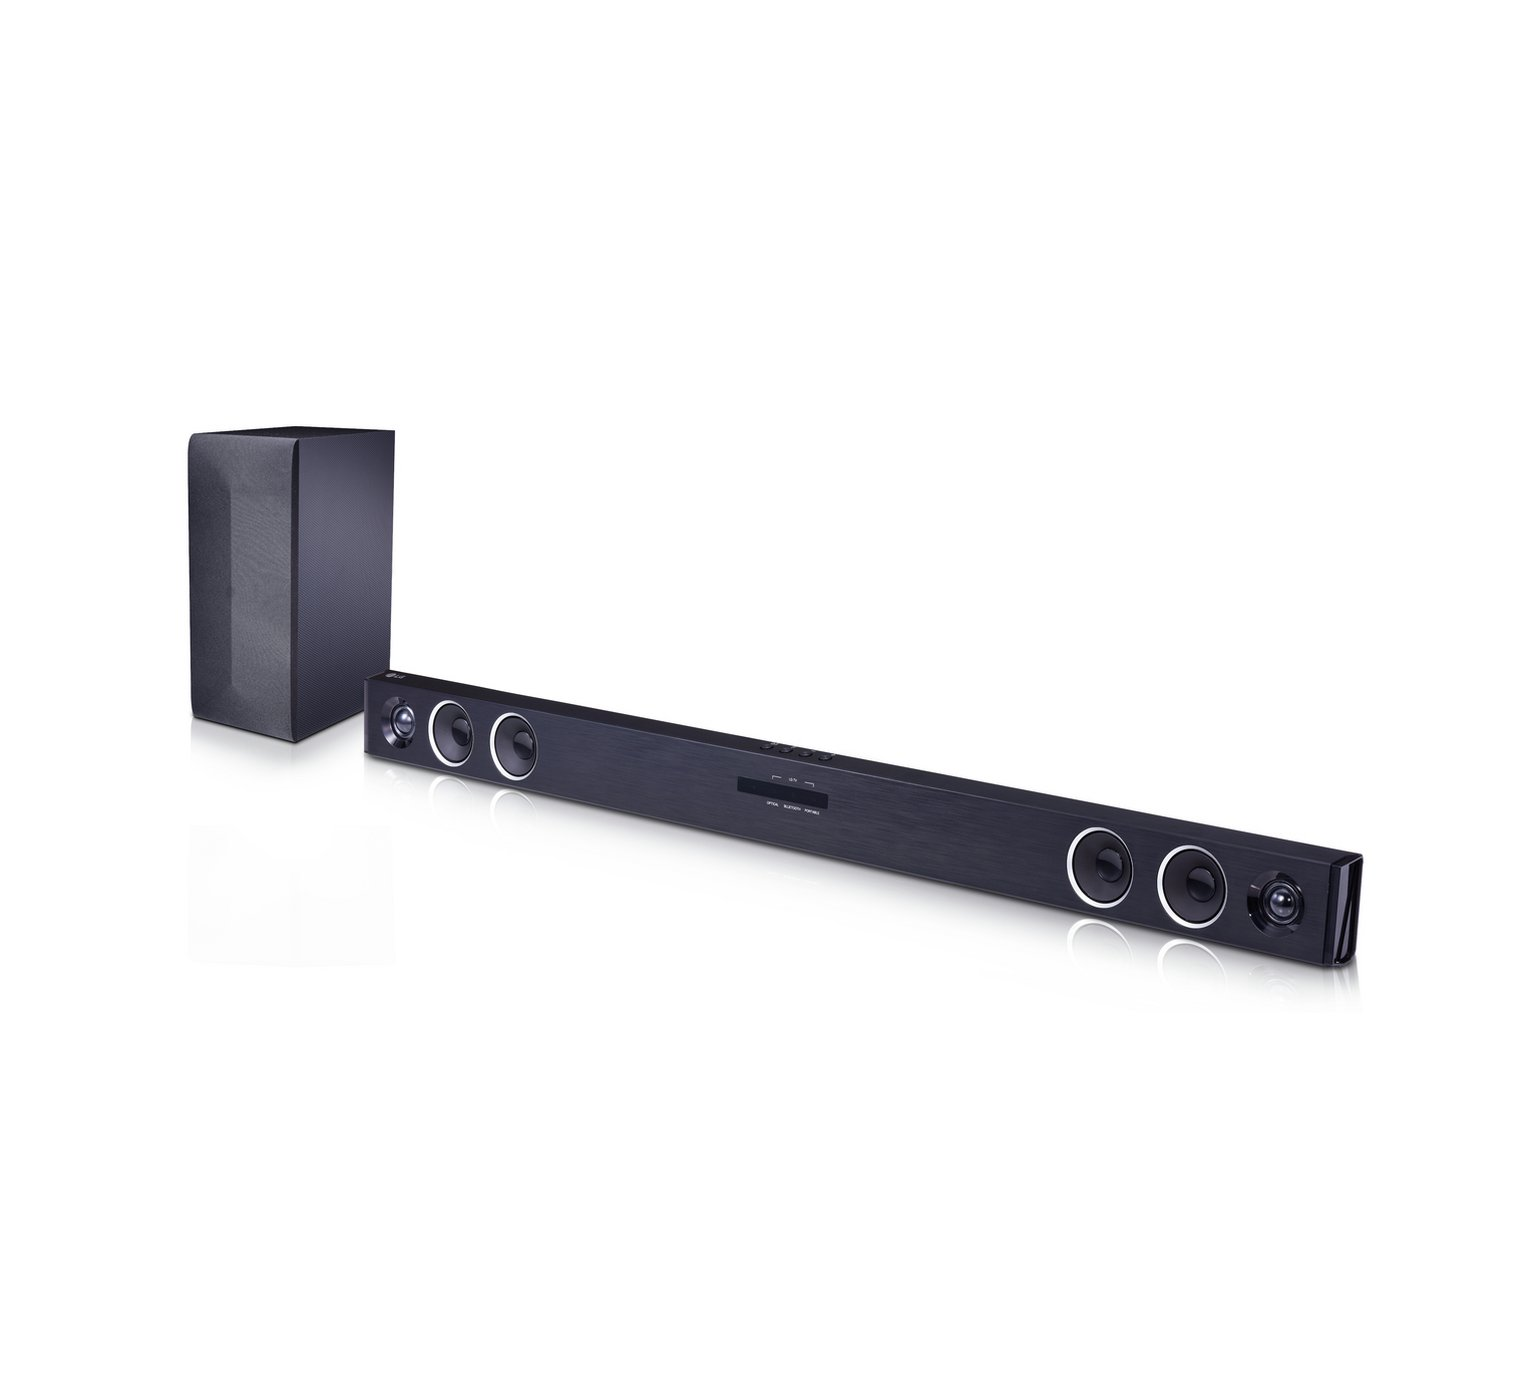 LG SJ3 300W 2.1Ch Bluetooth Sound Bar with Wireless Sub